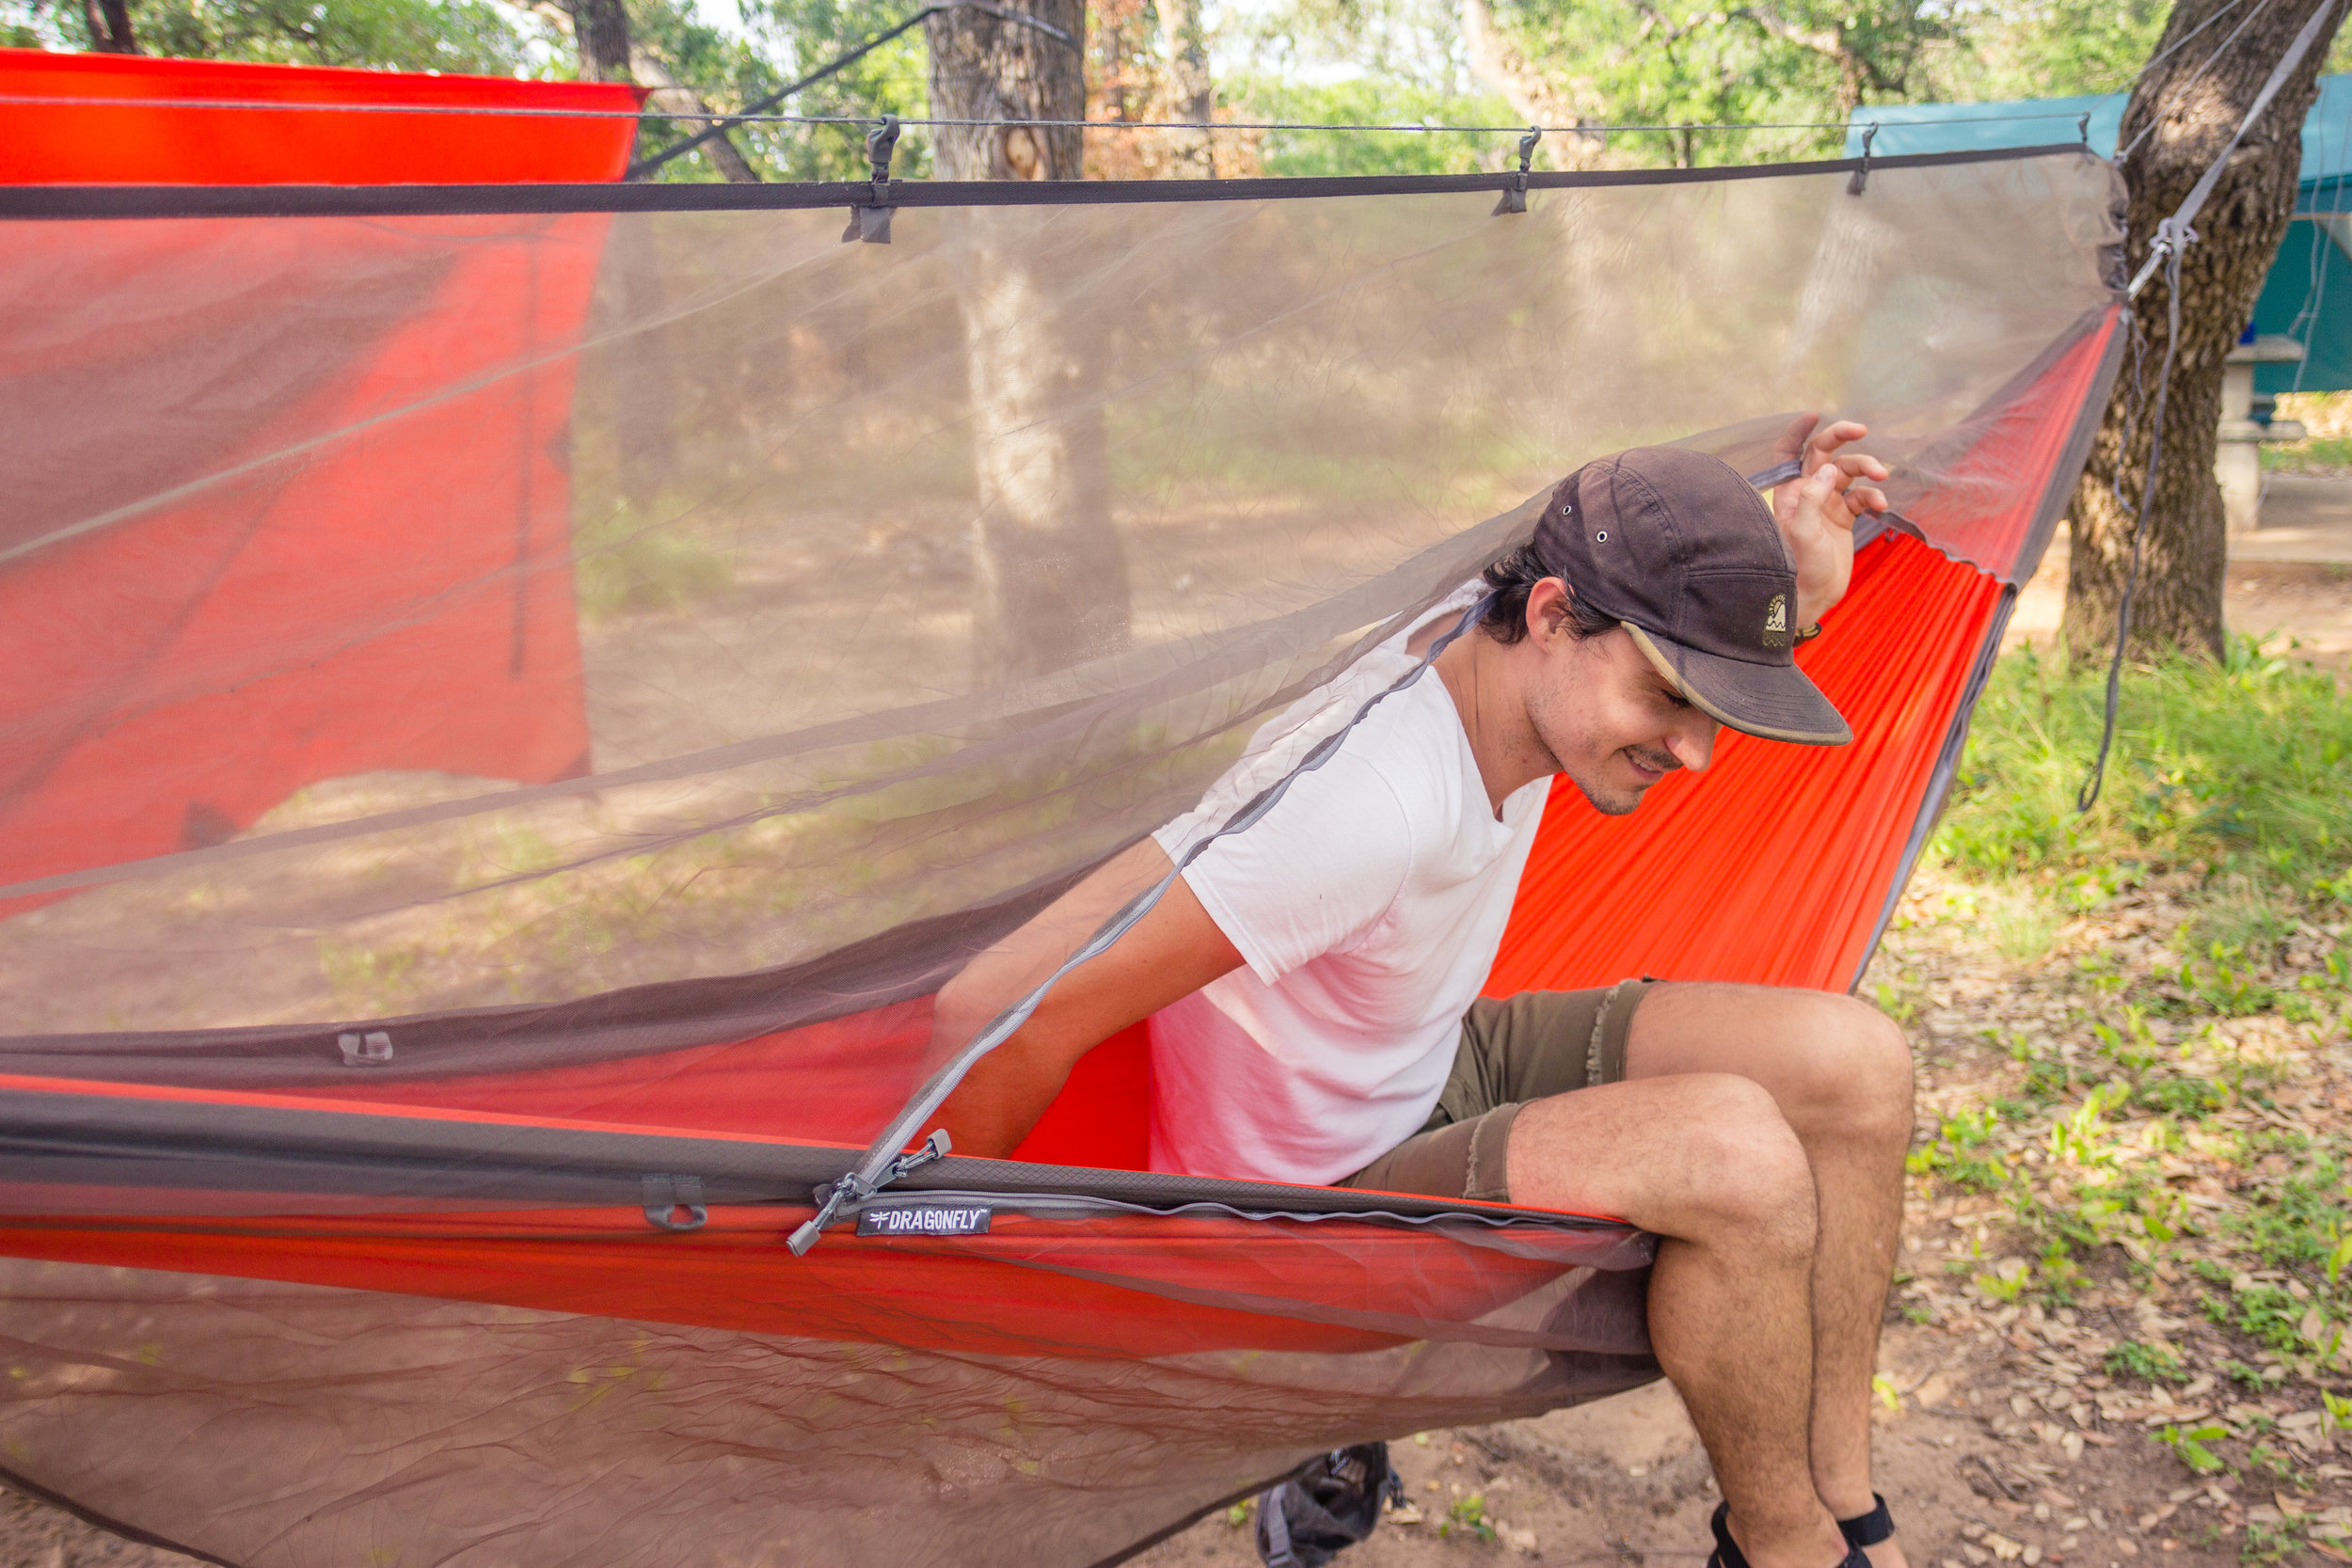 Chris trying the Dragonfly Insect Net over his Roo Hammock for the first time.